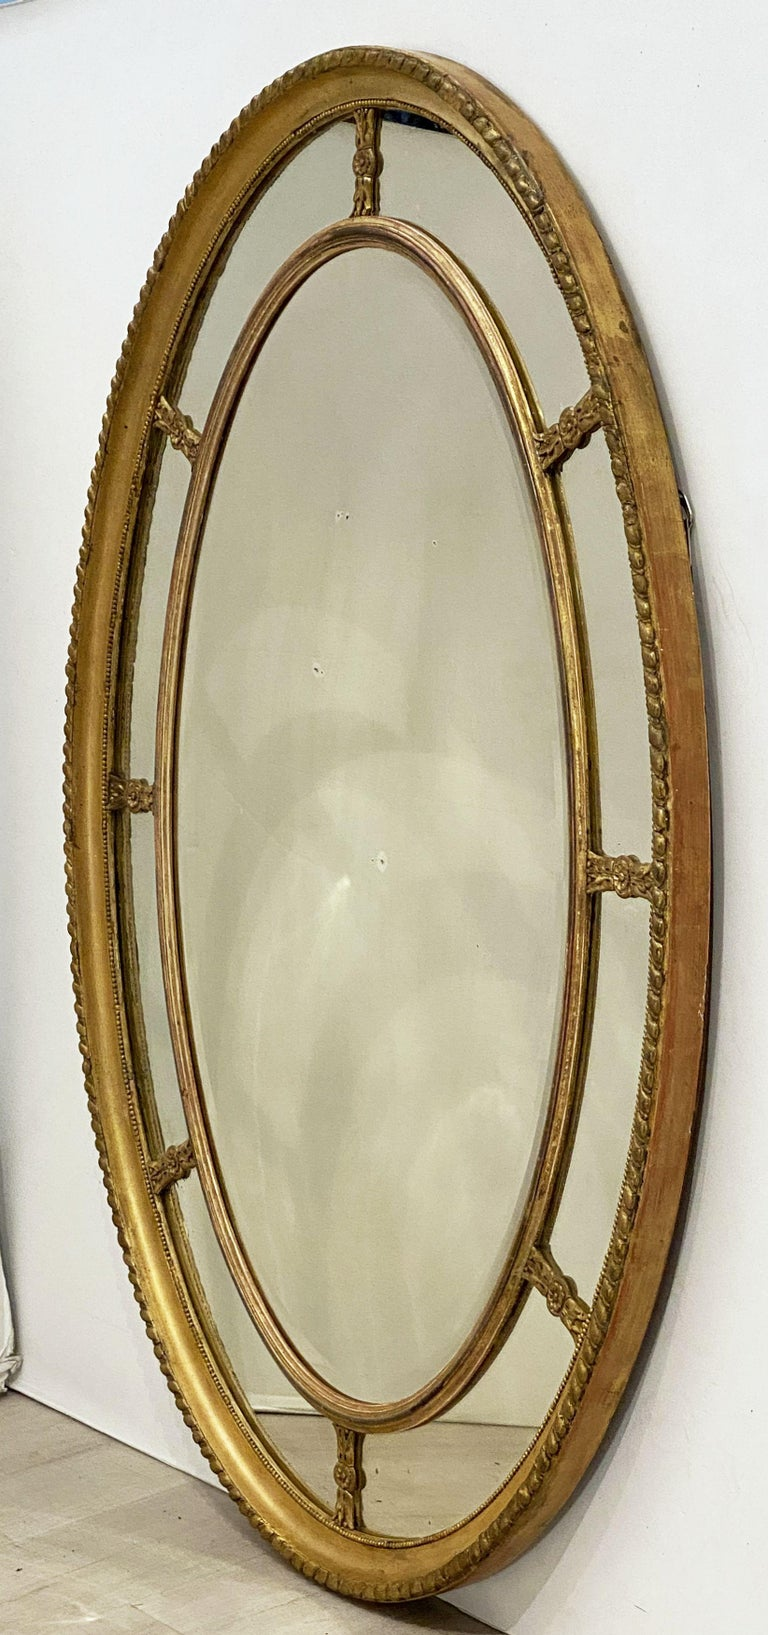 Adam Style Large English Segmented Gilt Oval Wall Mirror For Sale